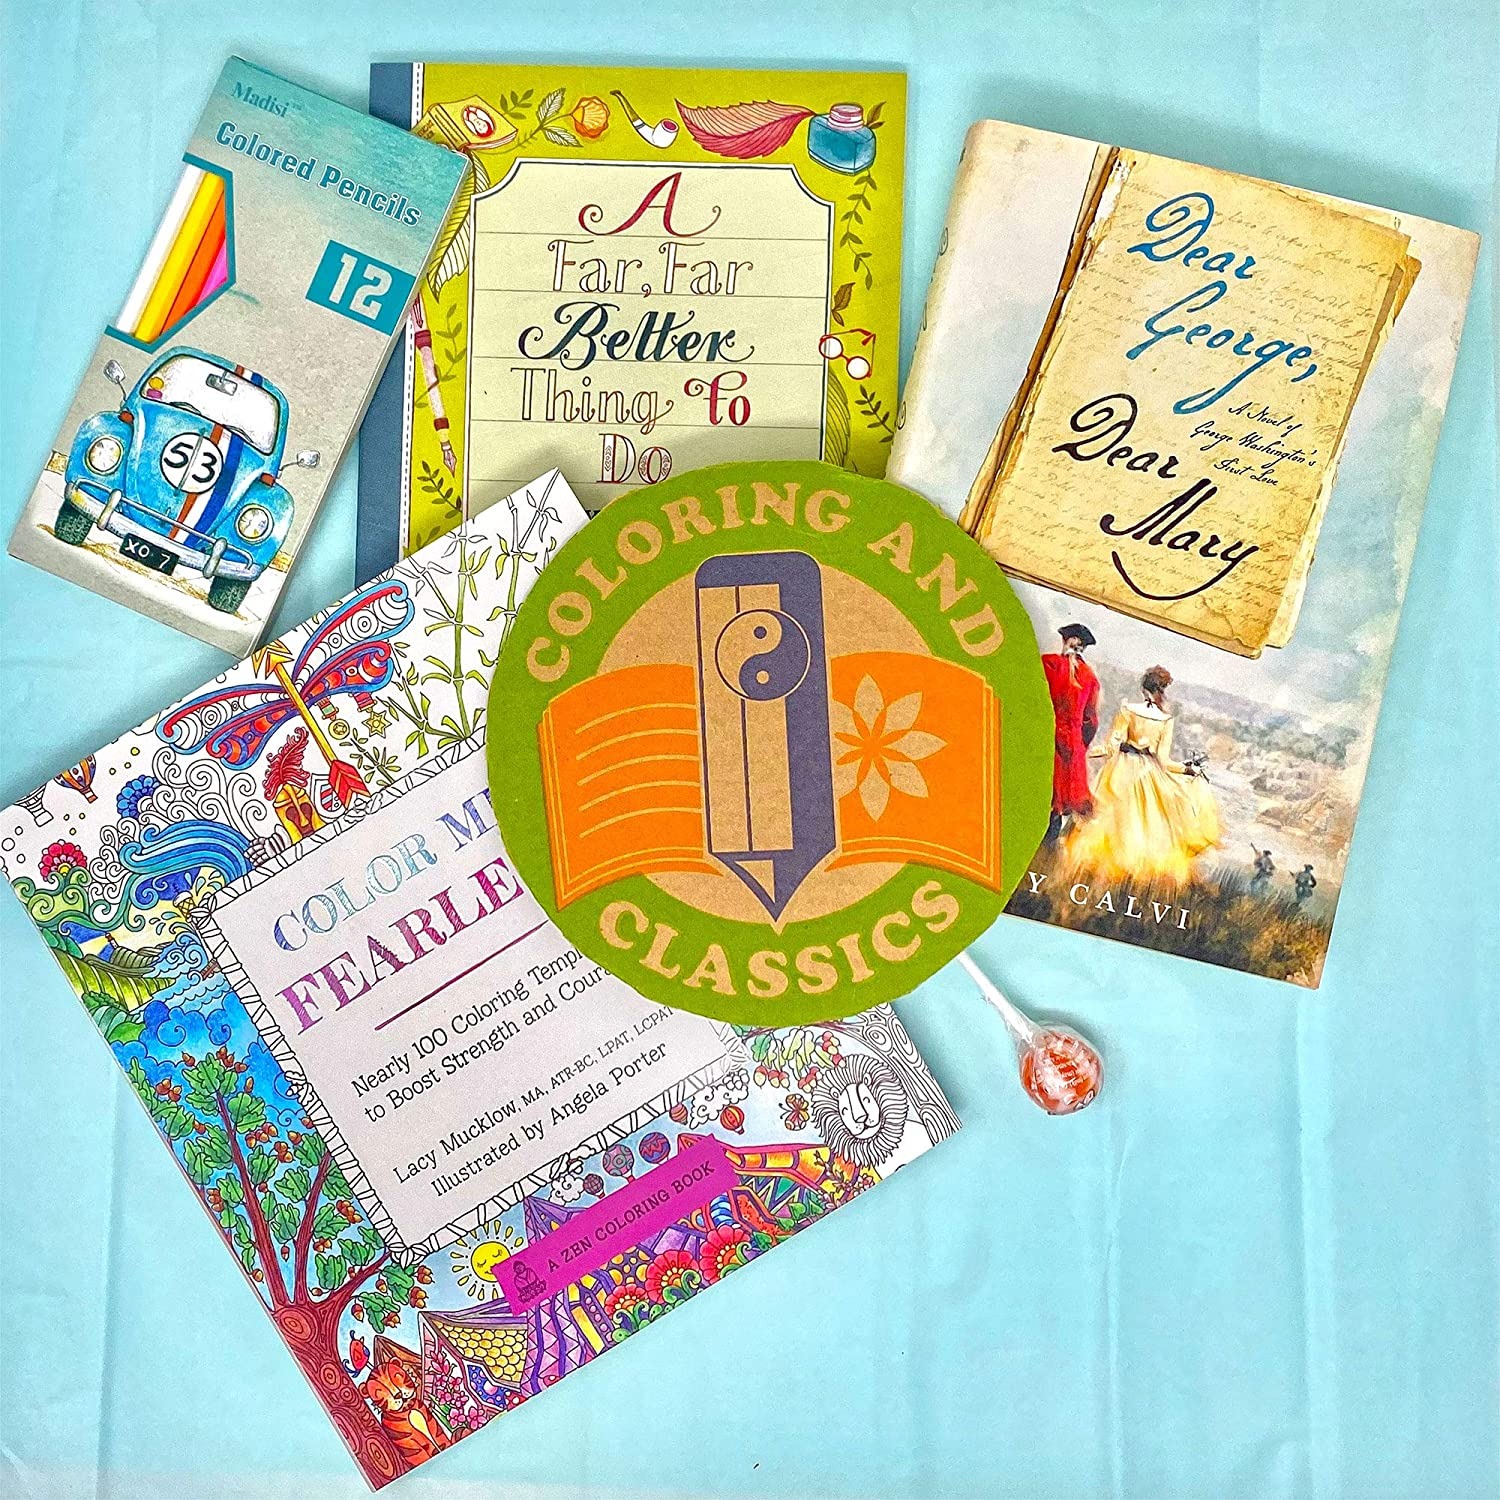 Coloring And Classics - Monthly Subscription Box - Acclaimed Fiction